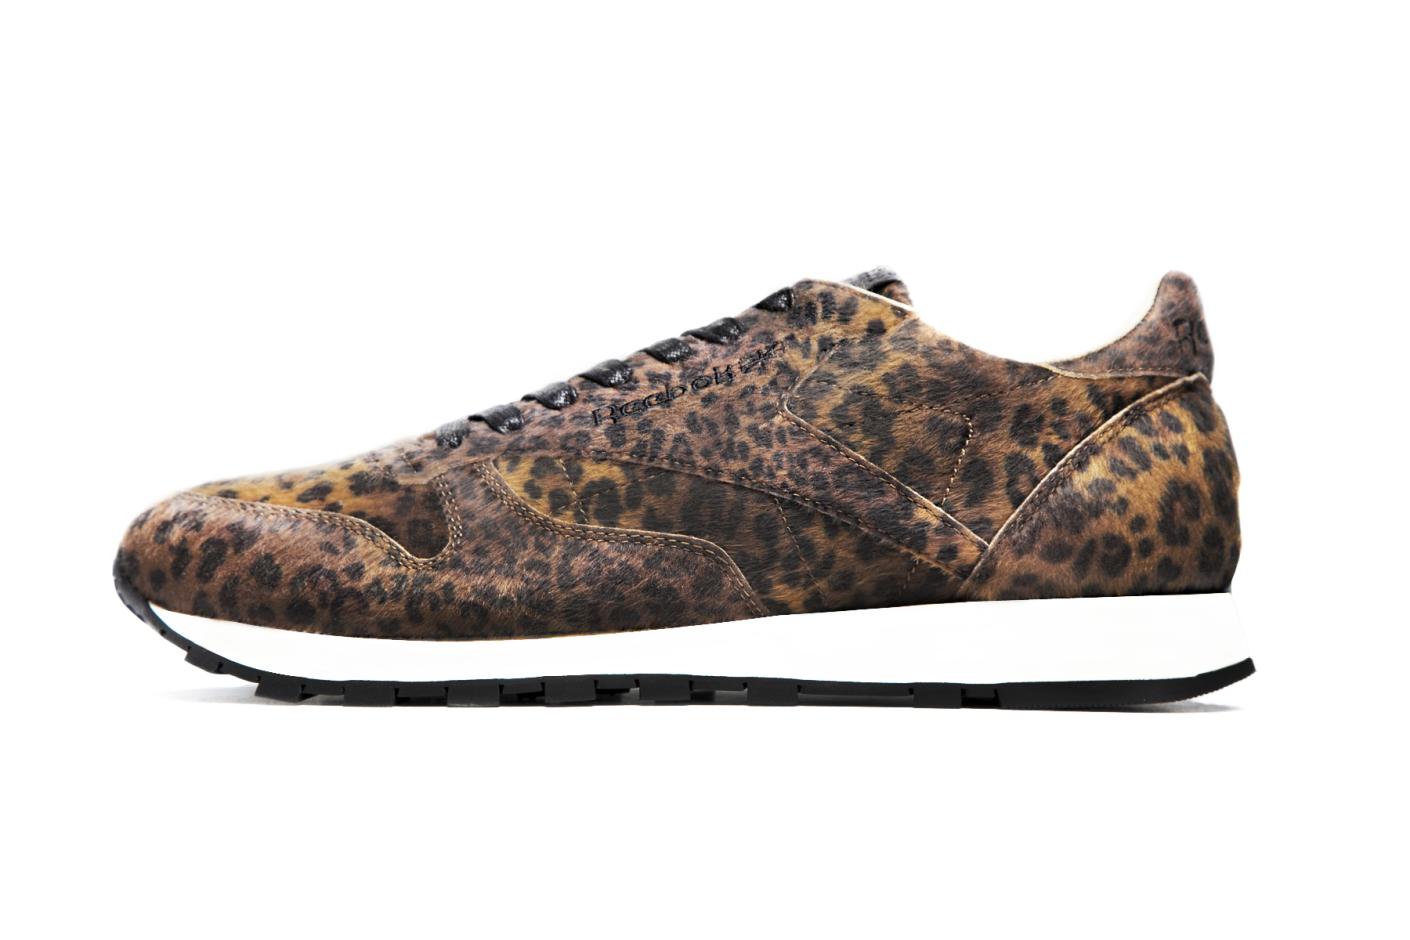 Head Porter Plus x Reebok Classic Leather leopard profile